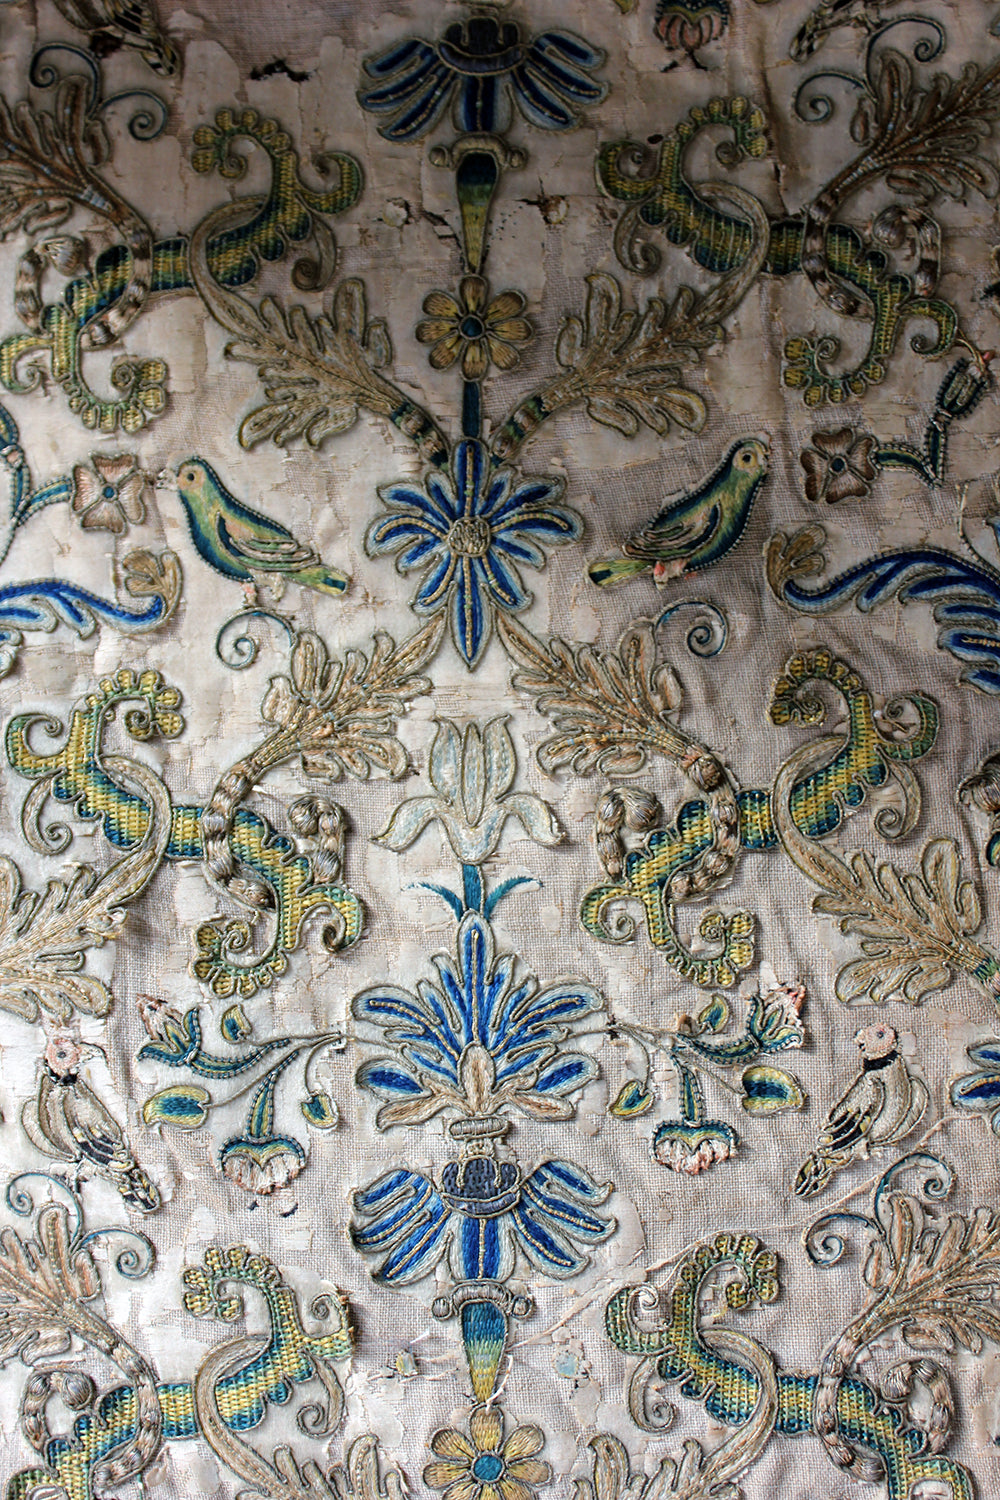 A Large 17thC English Silk & Metal Threaded Embroidery c.1680-1700